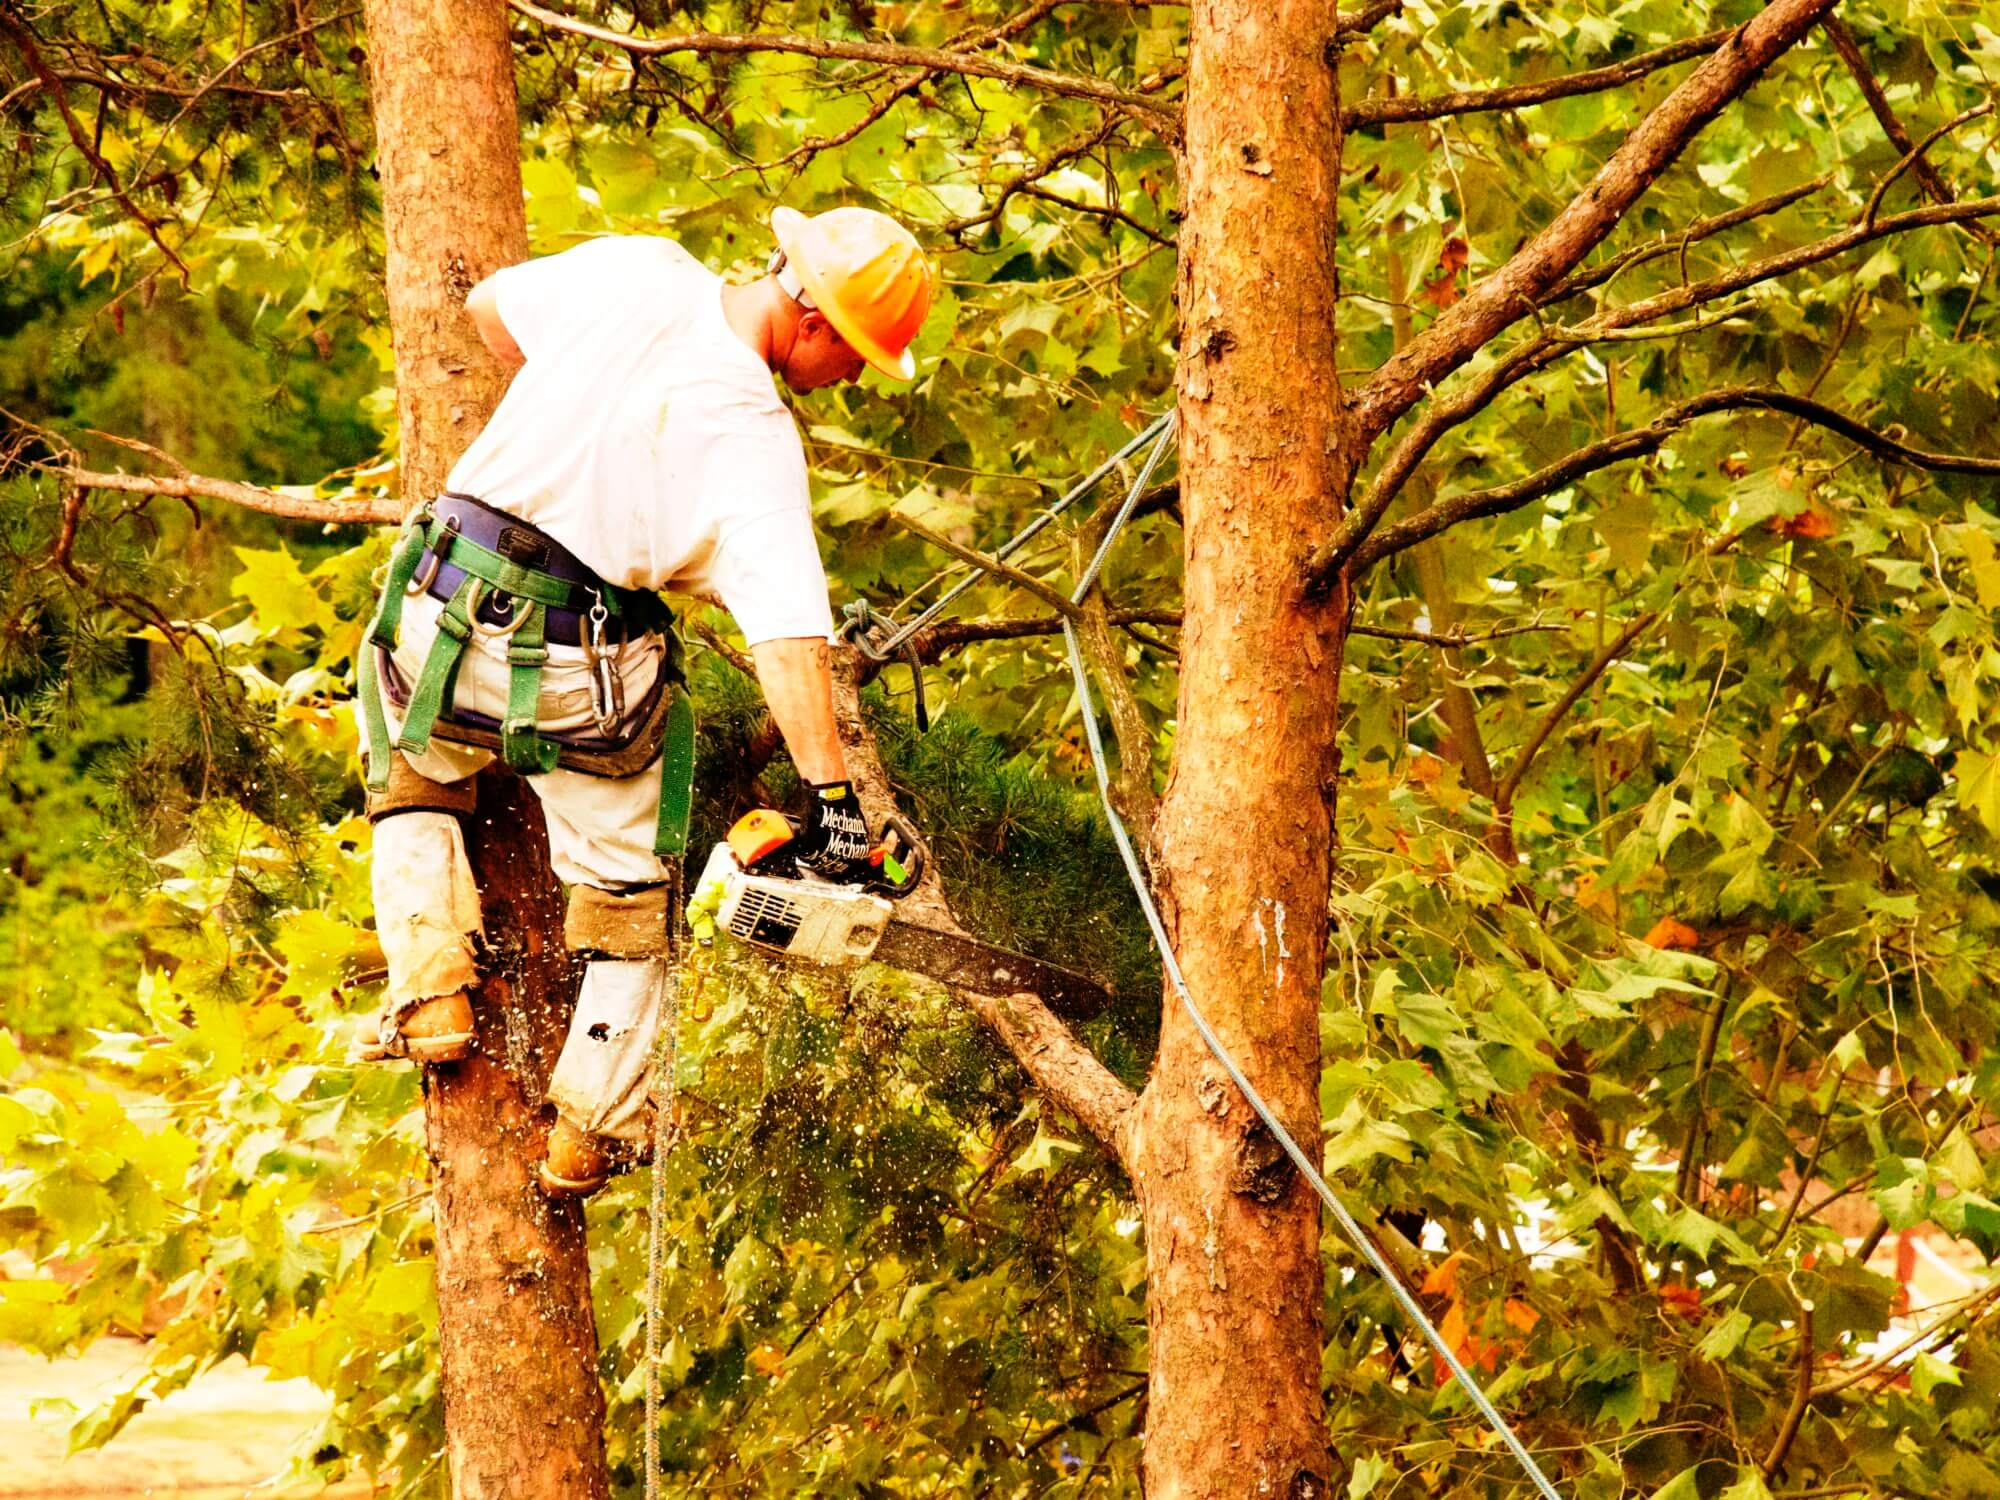 Solana Beach CA Tree Trimming and Stump Grinding Services Home Page Image-We Offer Tree Trimming Services, Tree Removal, Tree Pruning, Tree Cutting, Residential and Commercial Tree Trimming Services, Storm Damage, Emergency Tree Removal, Land Clearing, Tree Companies, Tree Care Service, Stump Grinding, and we're the Best Tree Trimming Company Near You Guaranteed!